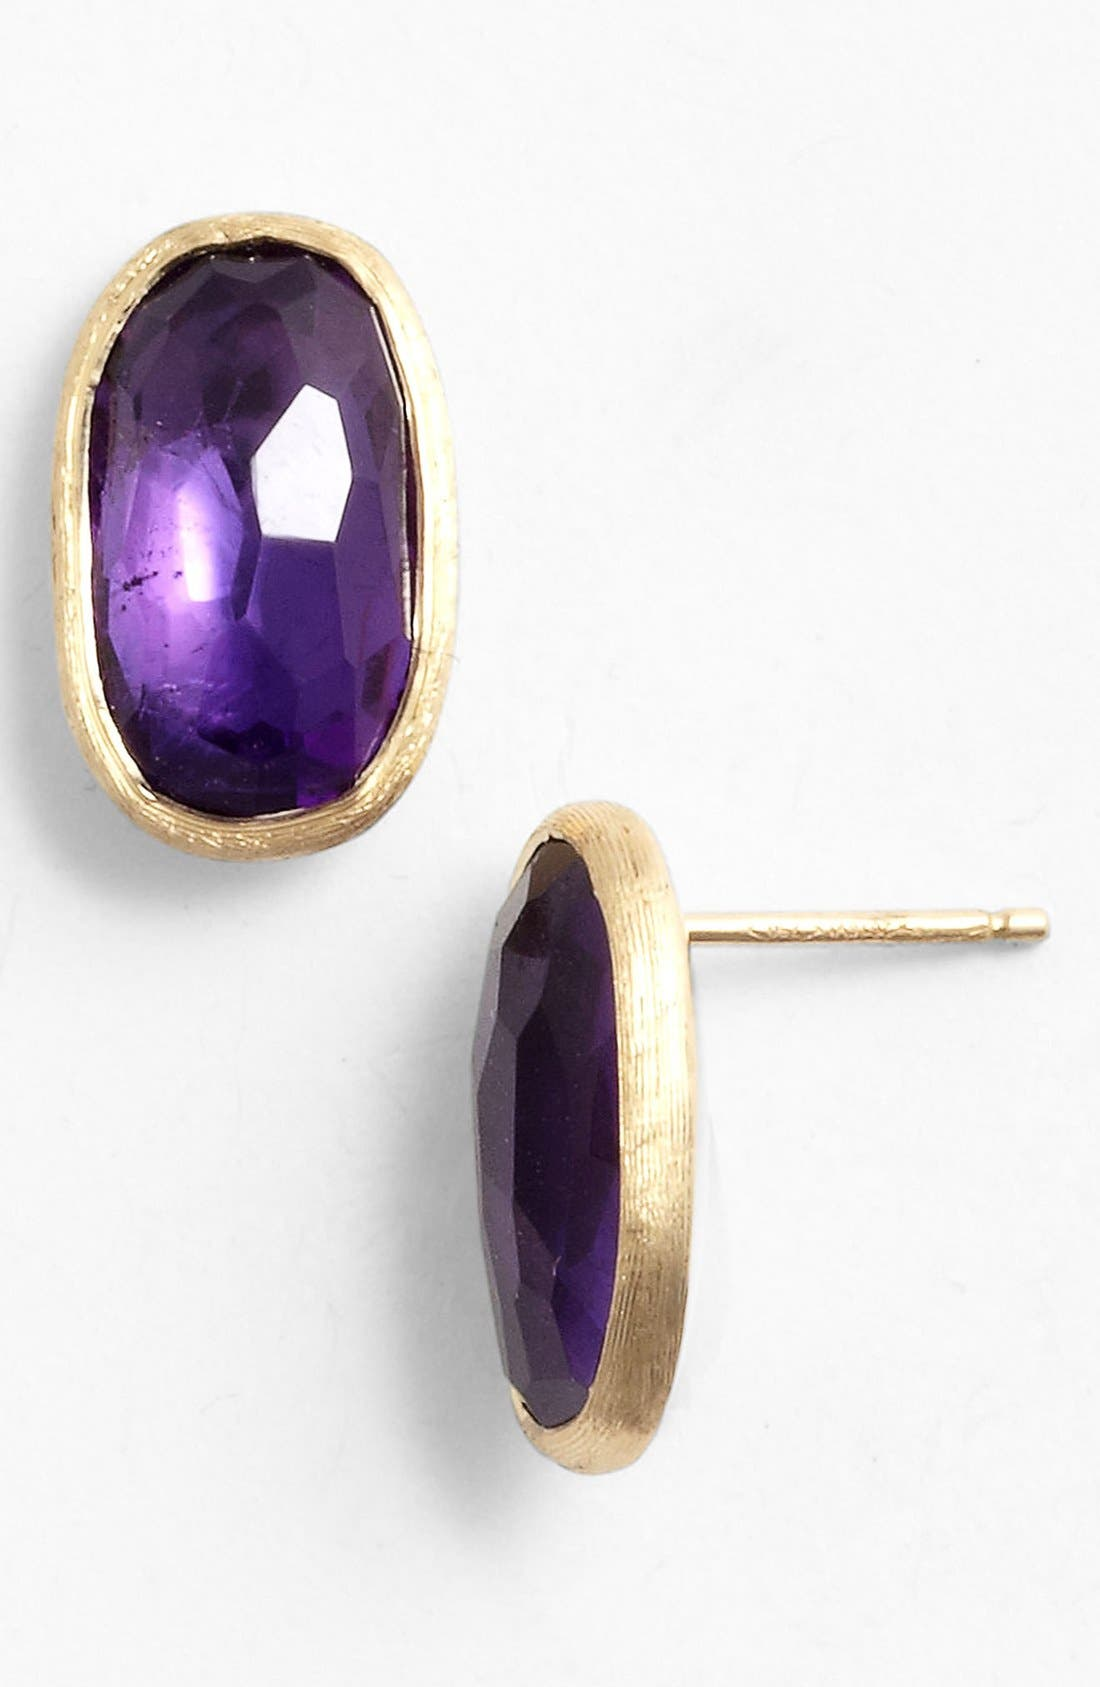 Alternate Image 1 Selected - Marco Bicego 'Murano' Stud Earrings